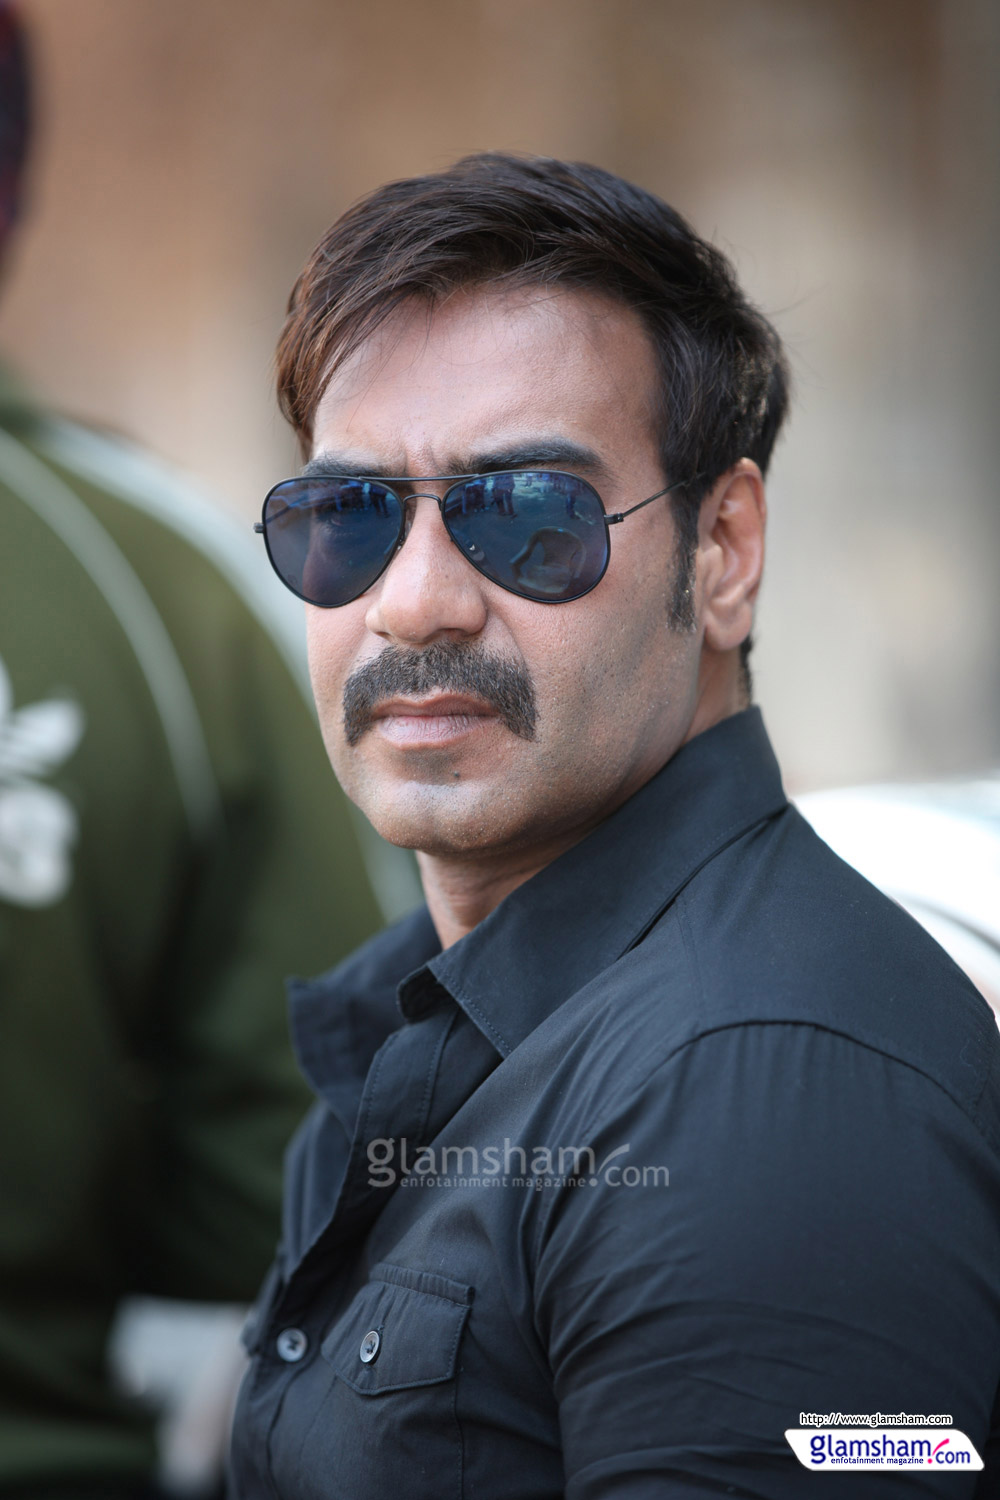 Ajay Devgan Latest Images Photos And Wallpapers Download 2018 - Download Free Hd Wallpapers